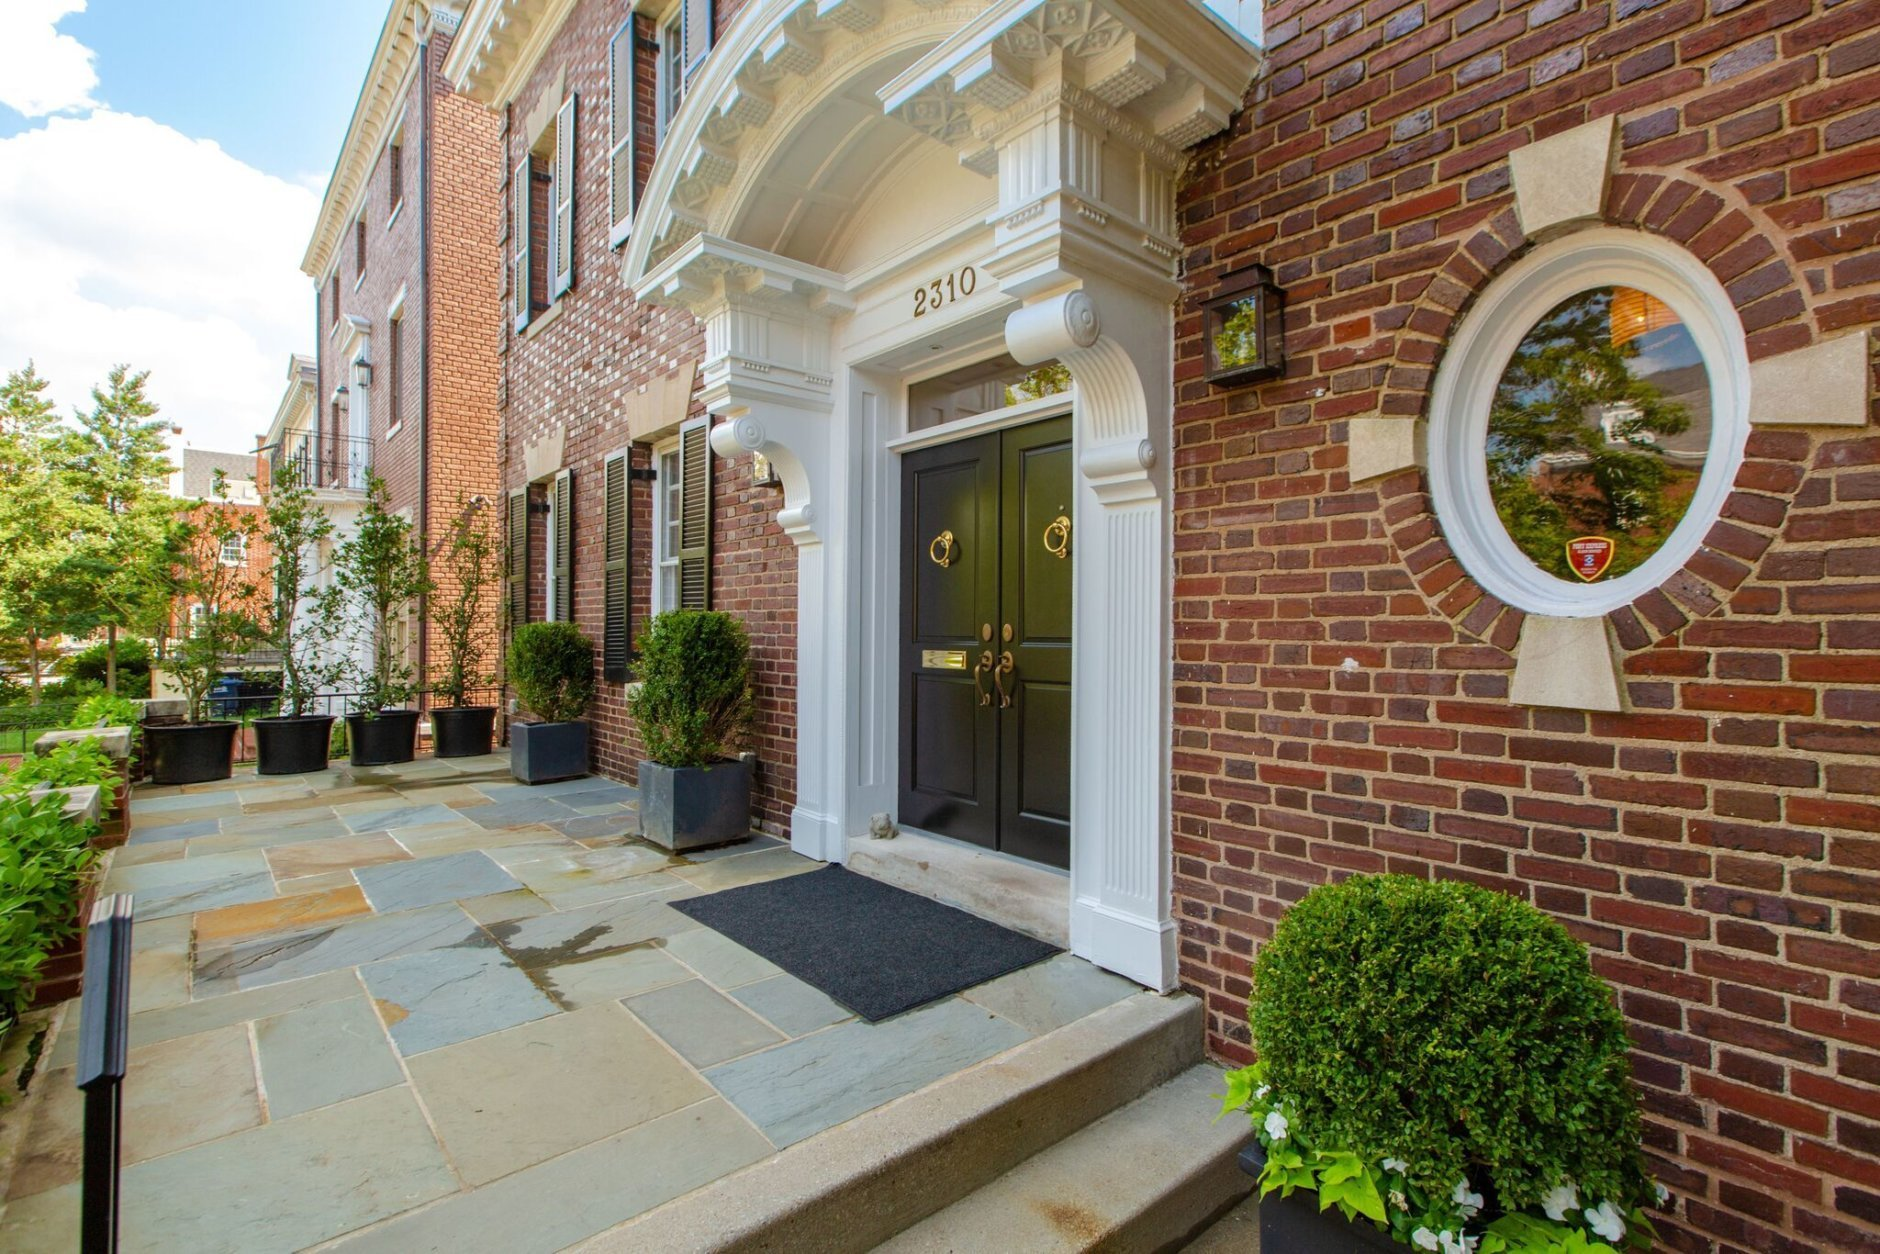 The home is two blocks from the Kalorama home being rented by Evanka Trump and Jared Kushner, and three blocks from the current family home purchased by Barack Obama. (Courtesy of Home Visit)